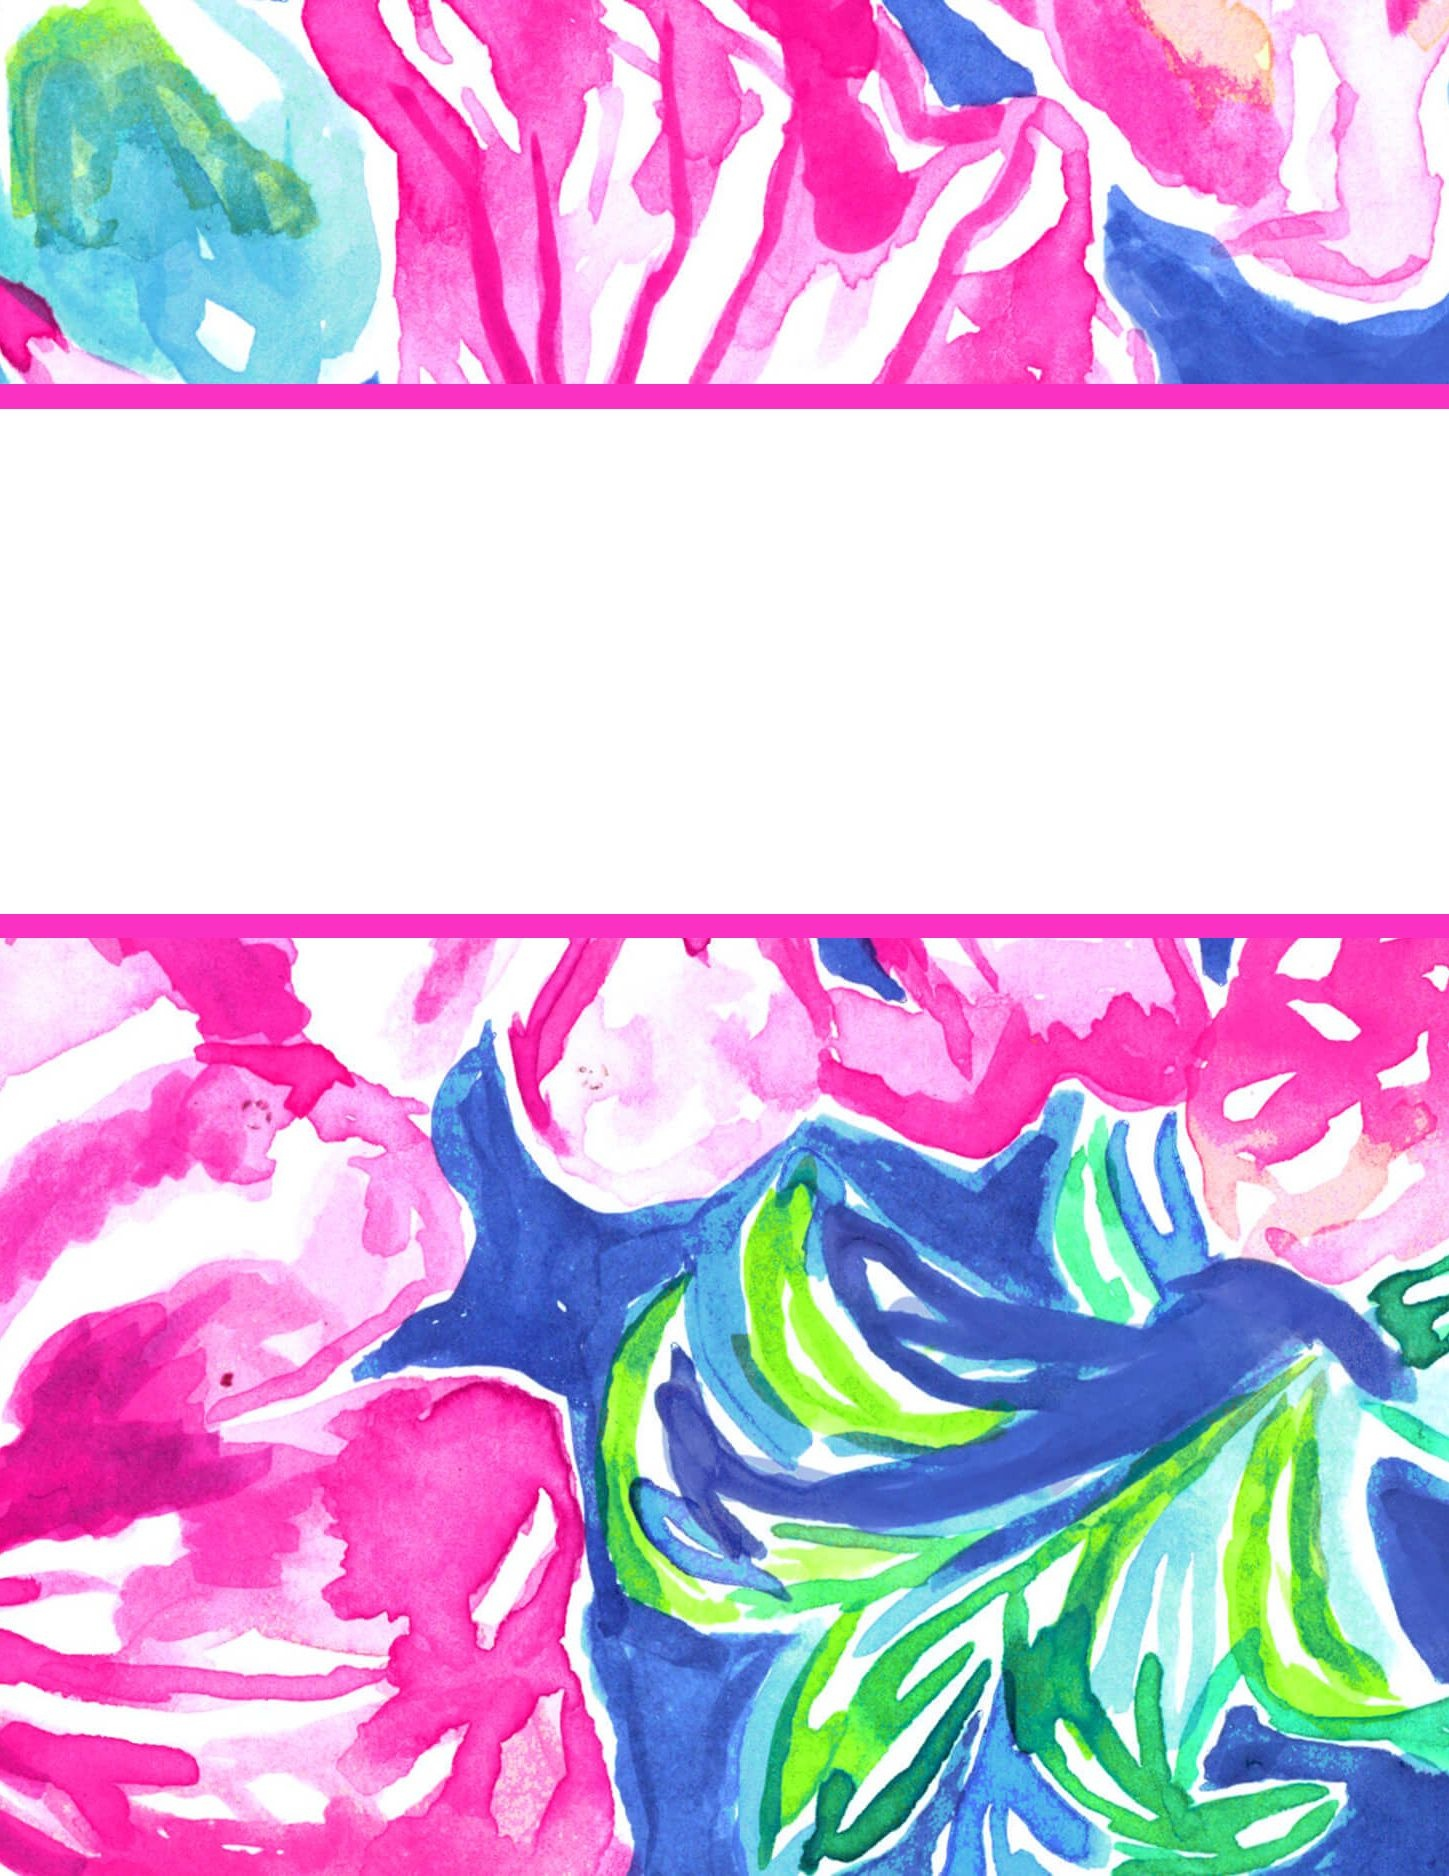 Free Printable Preppy Lilly Pulitzer Binder Covers | College Student - Free Printable School Binder Covers